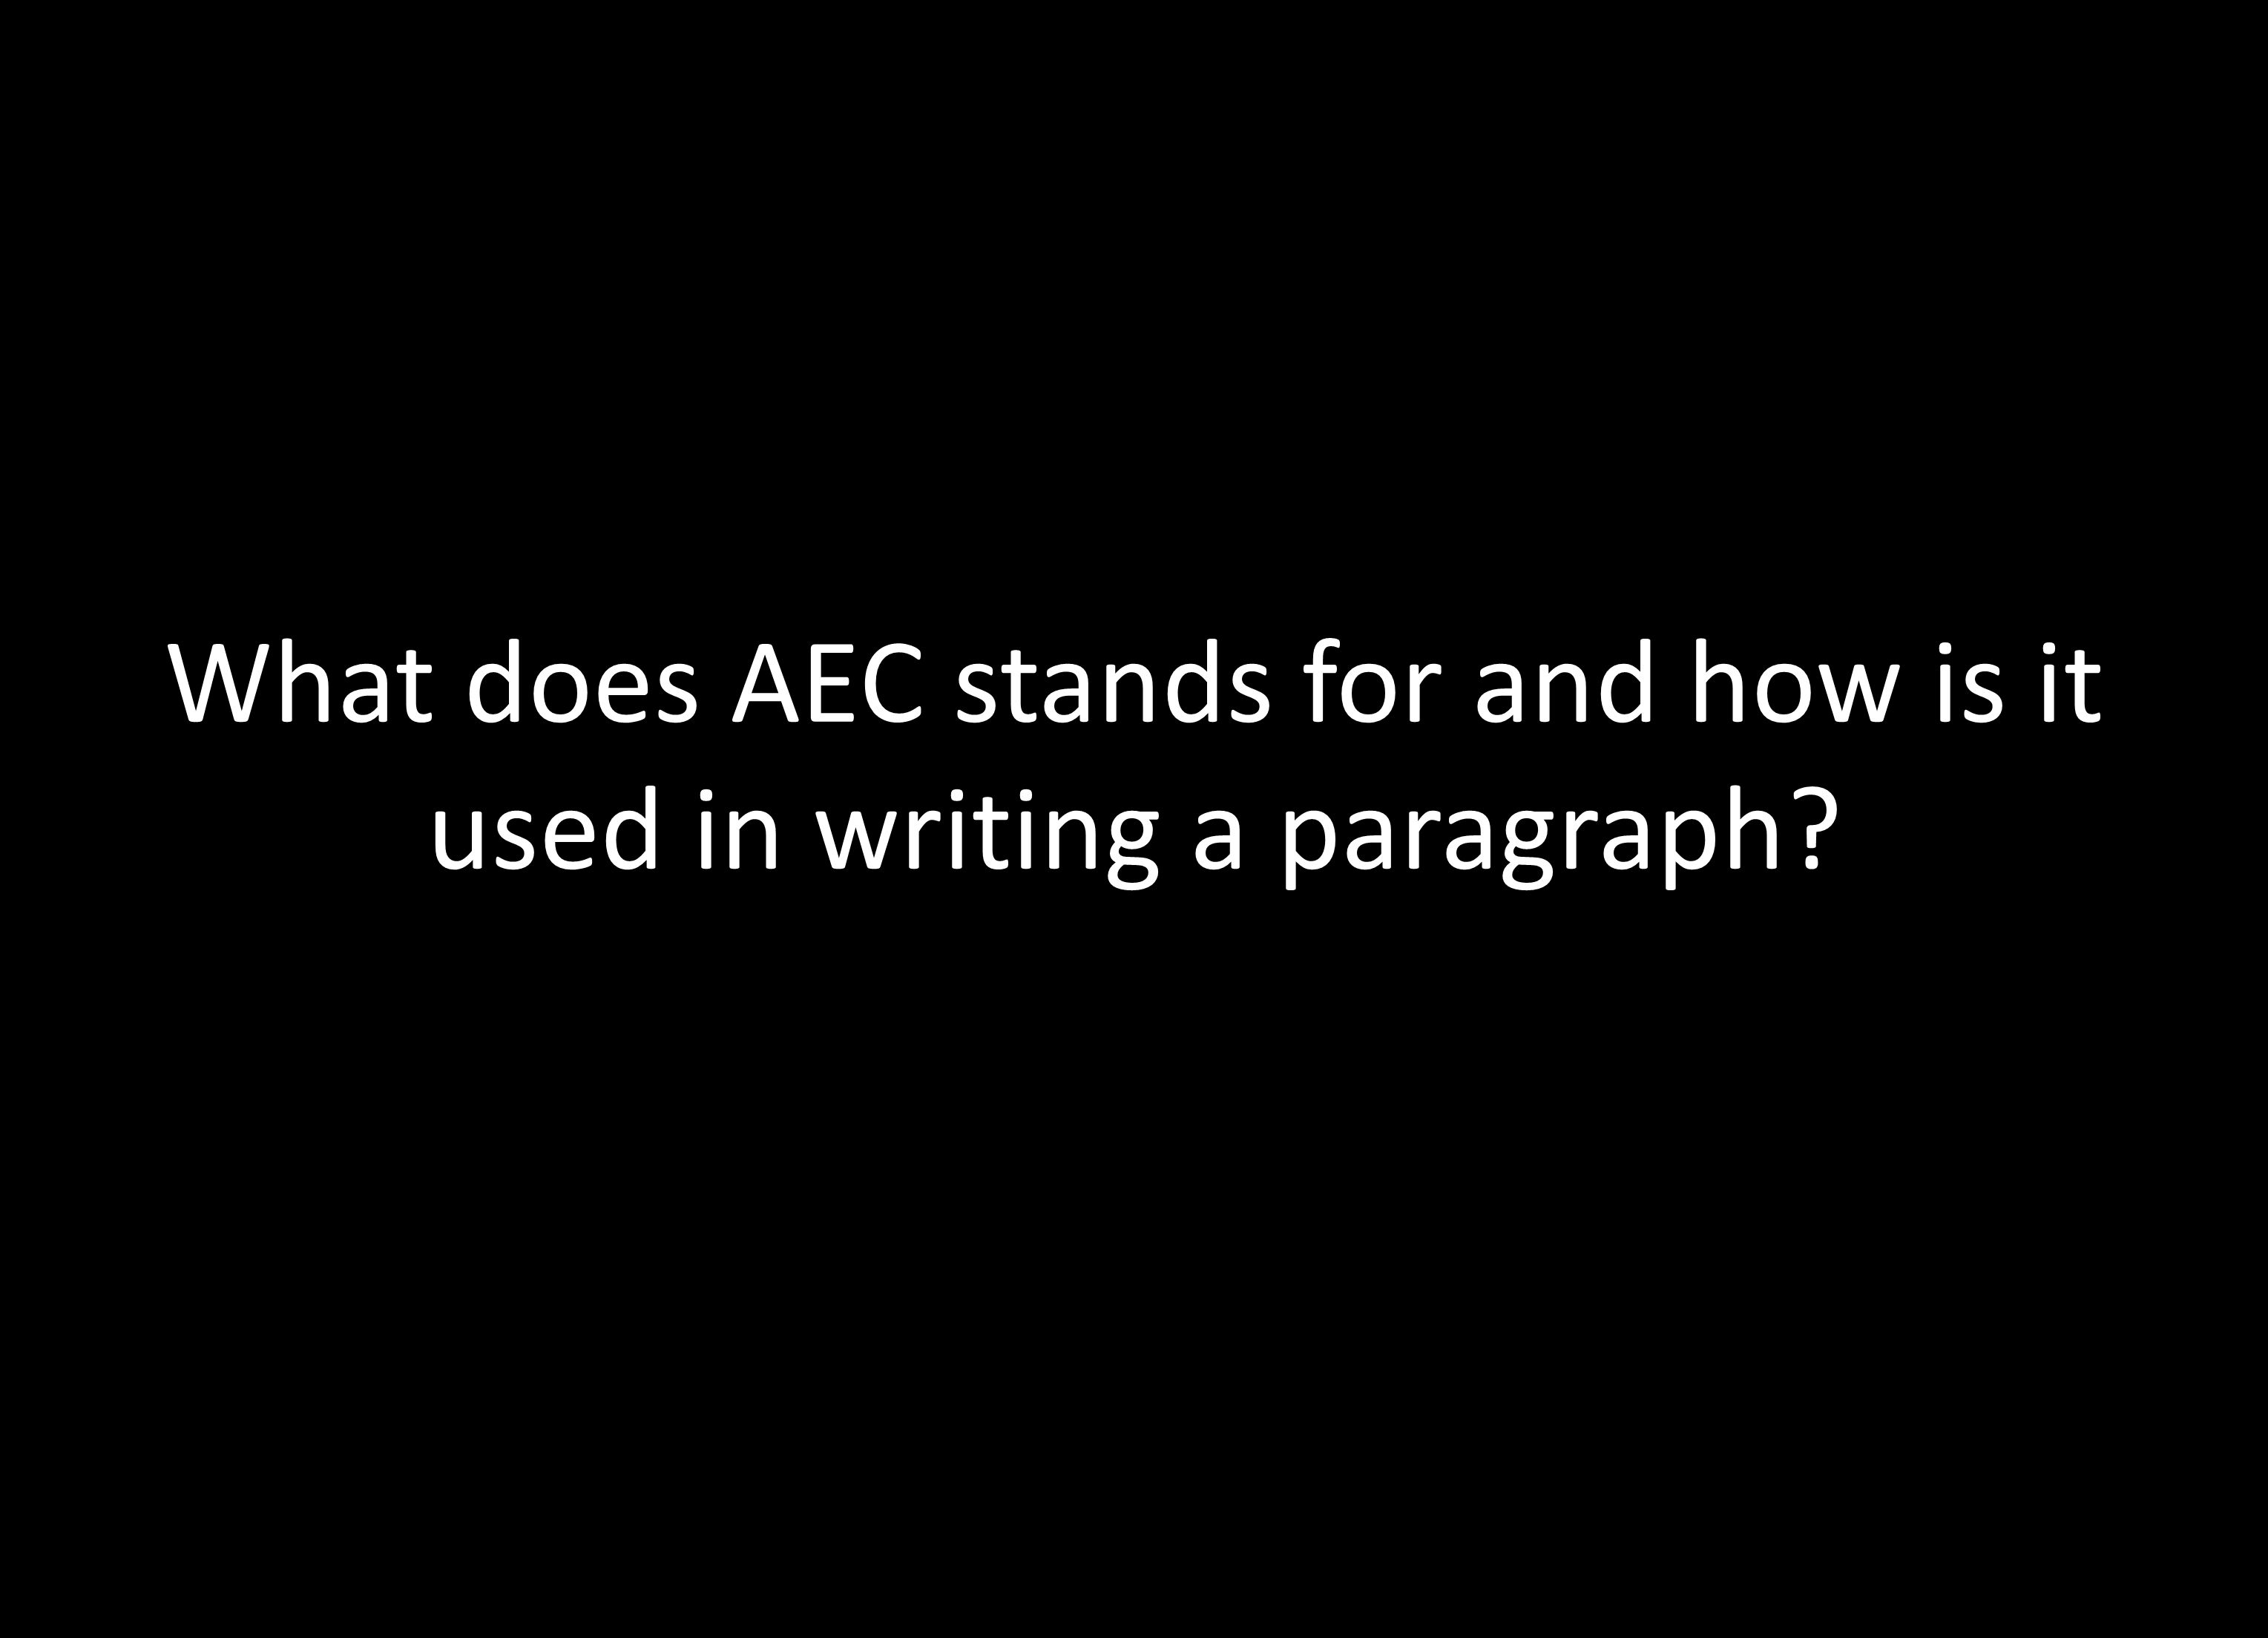 What does AEC stands for and how is it used in writing a paragraph